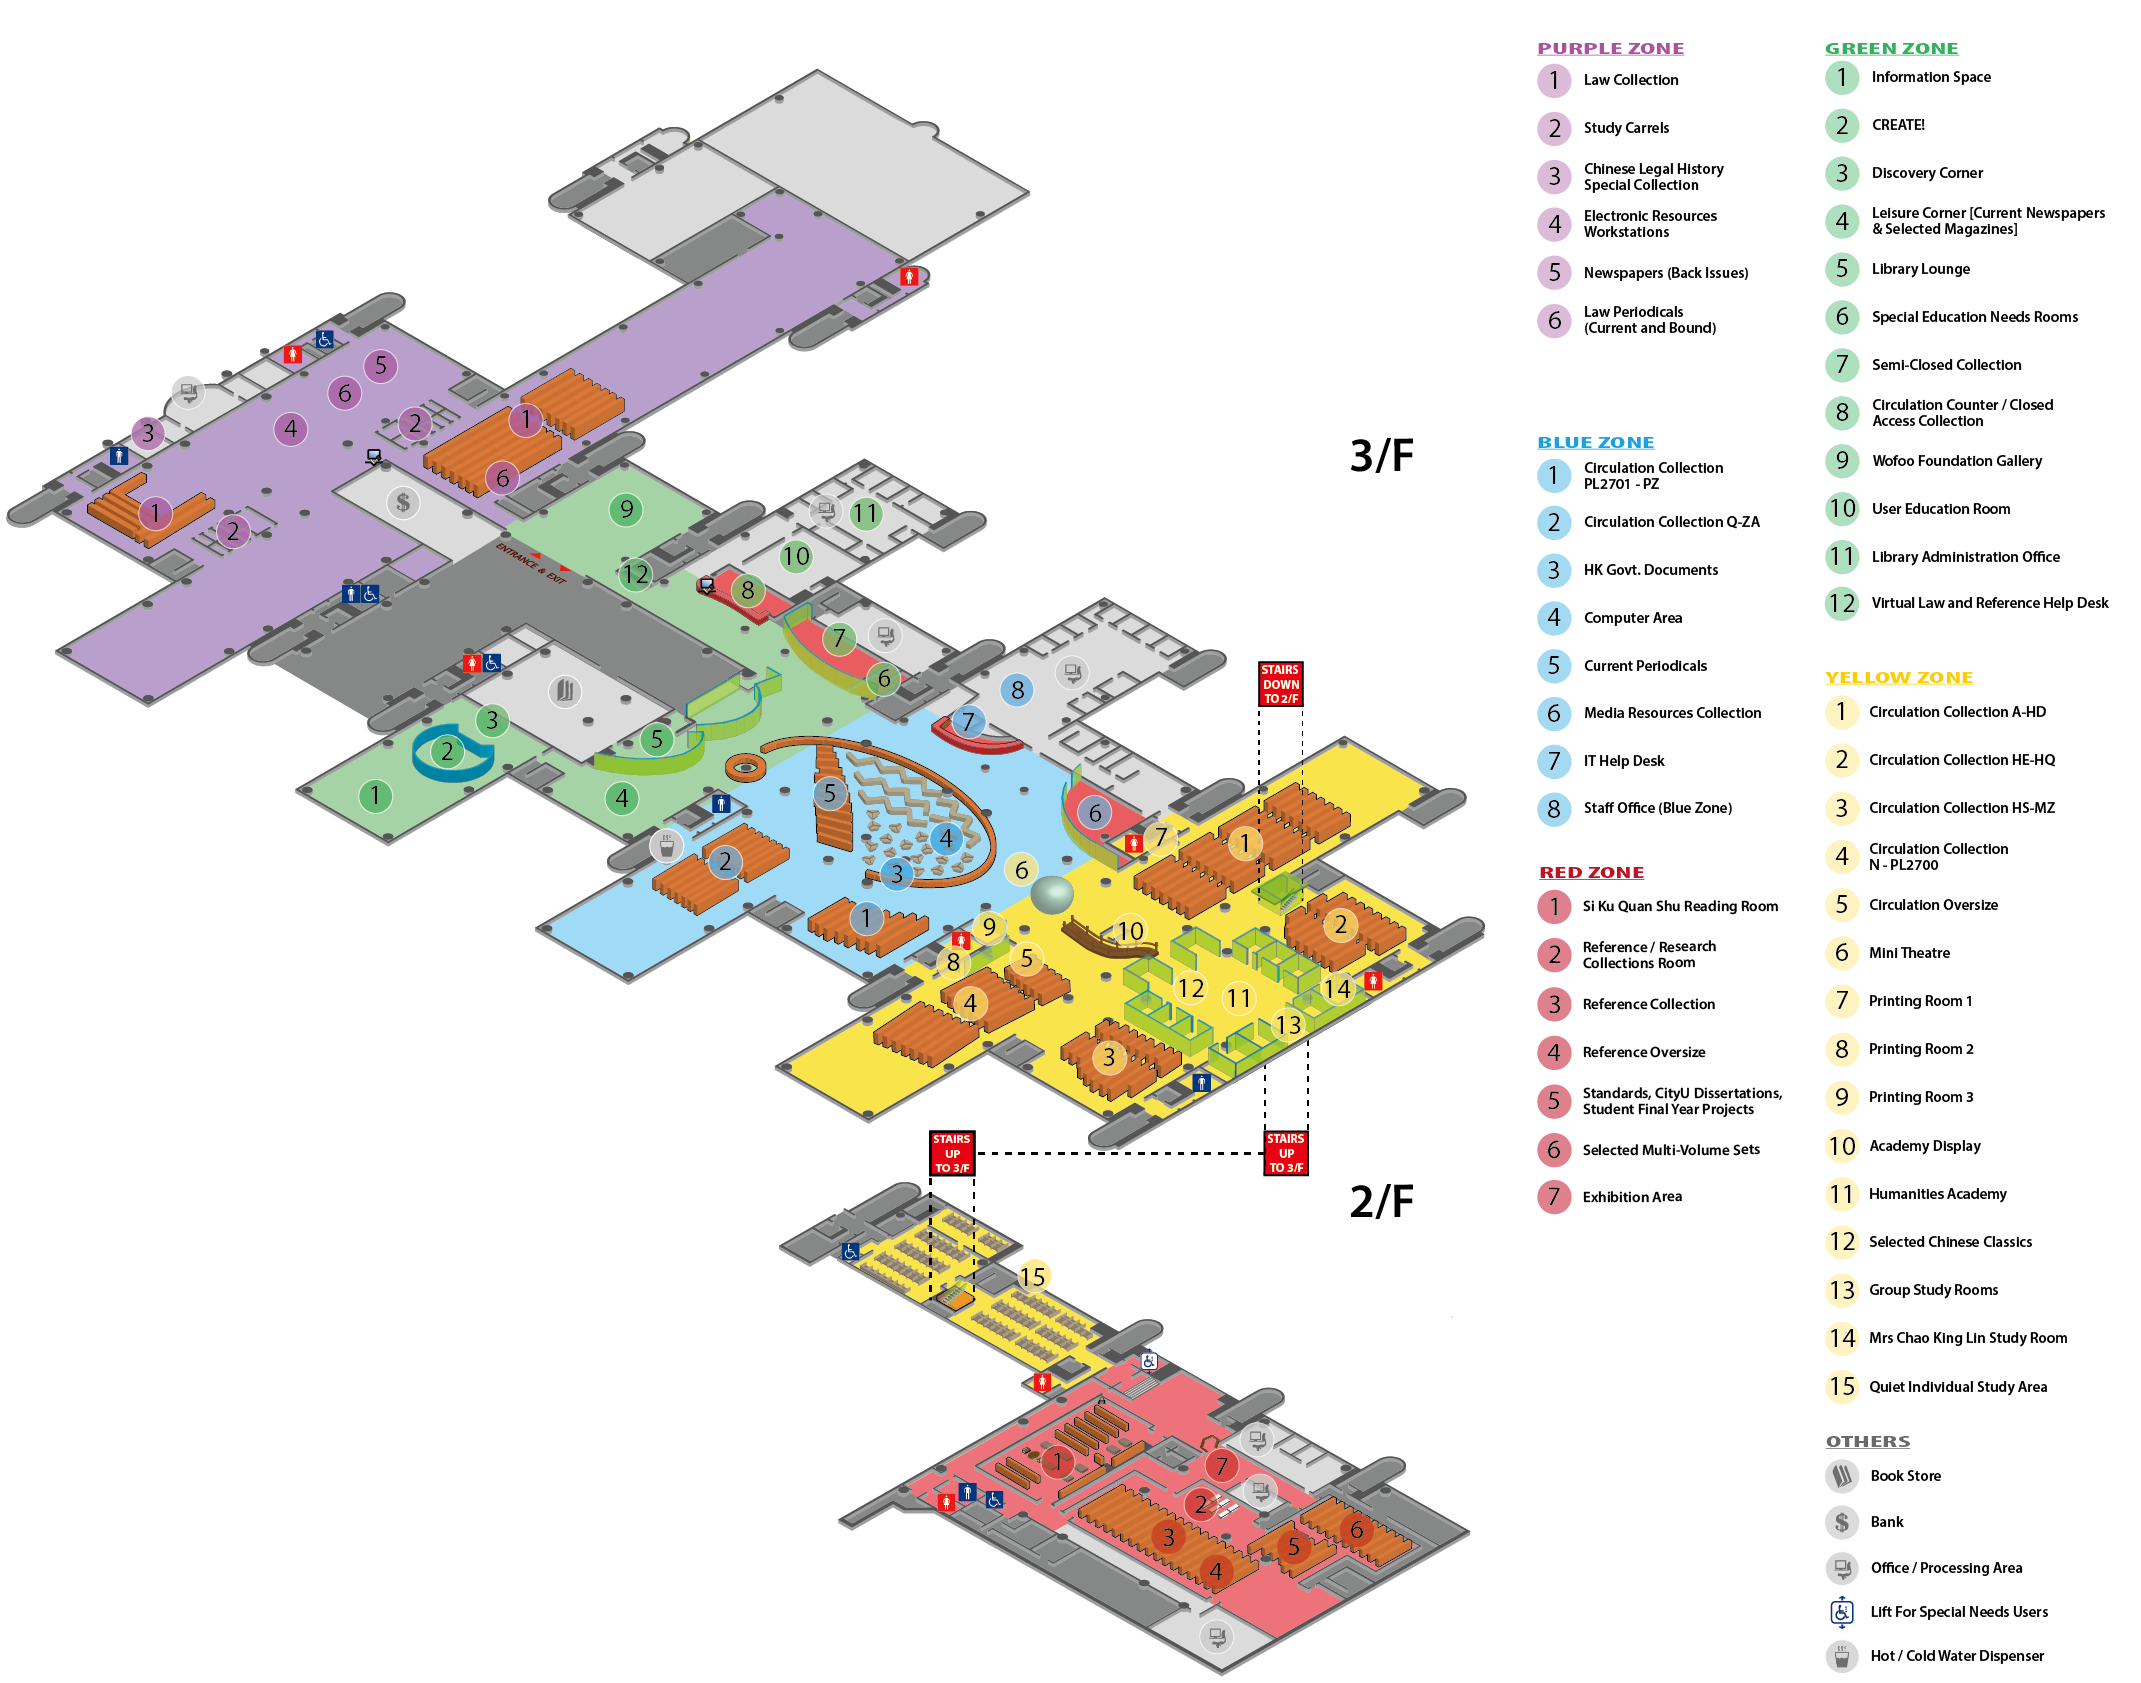 Floor Plan - Run Run Shaw Library - City University of Hong Kong